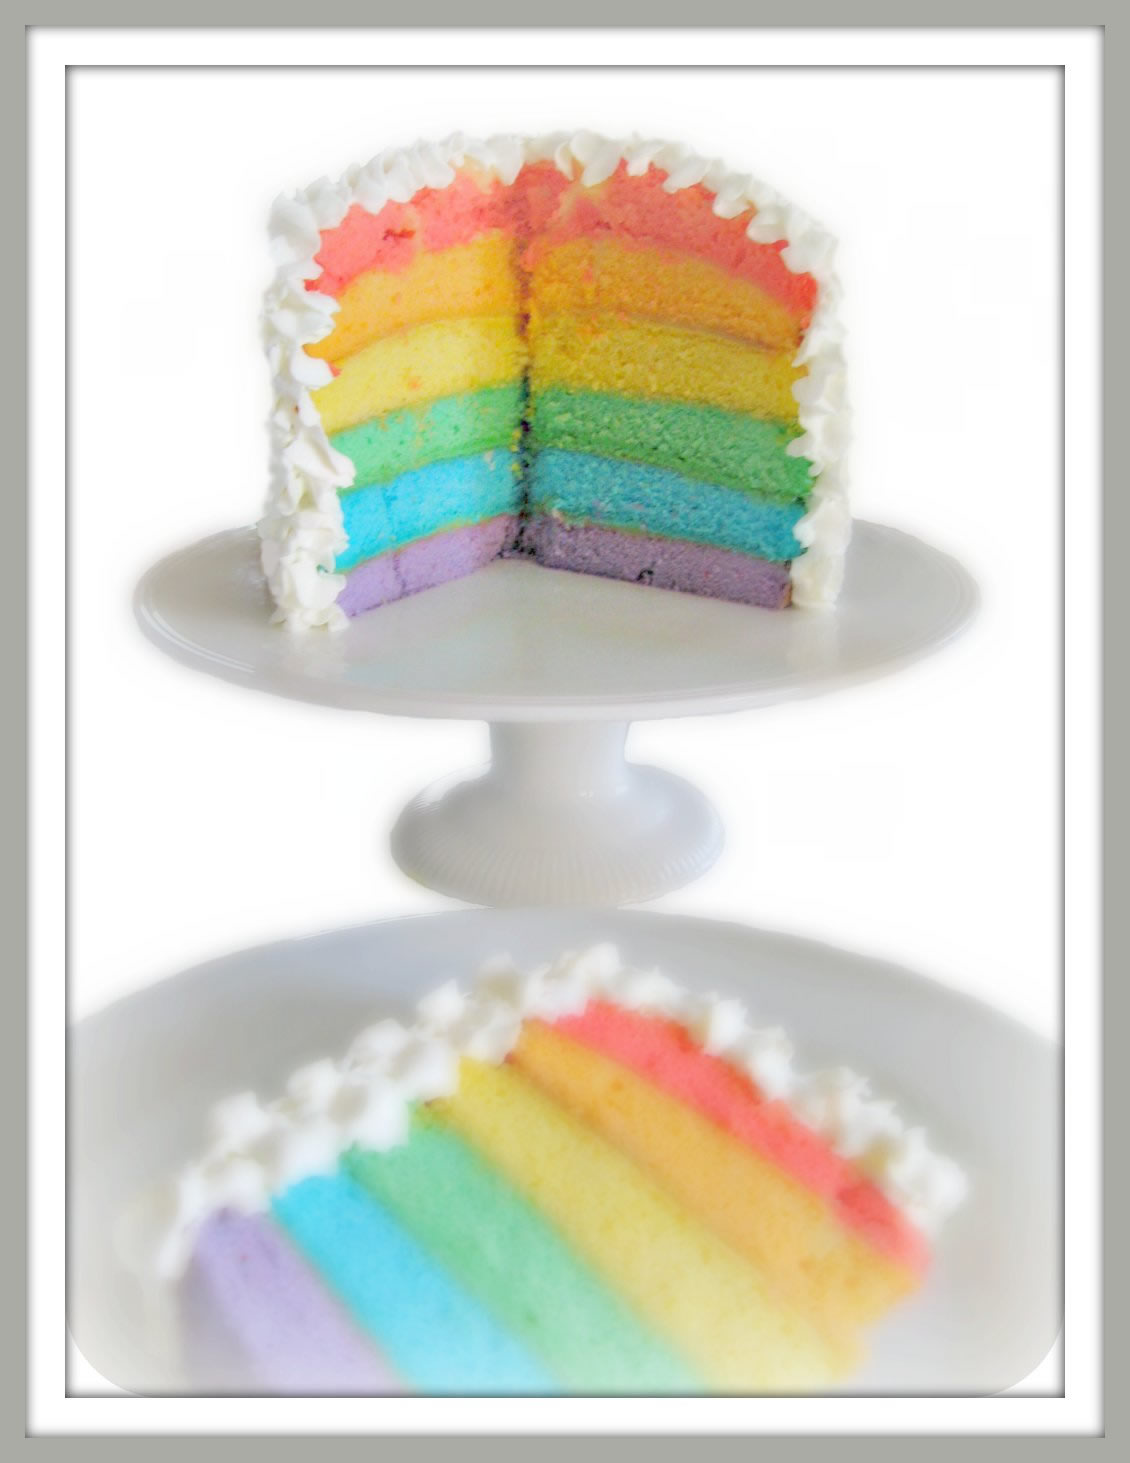 Pinks & Needles: Rainbow Layer Cake Recipe